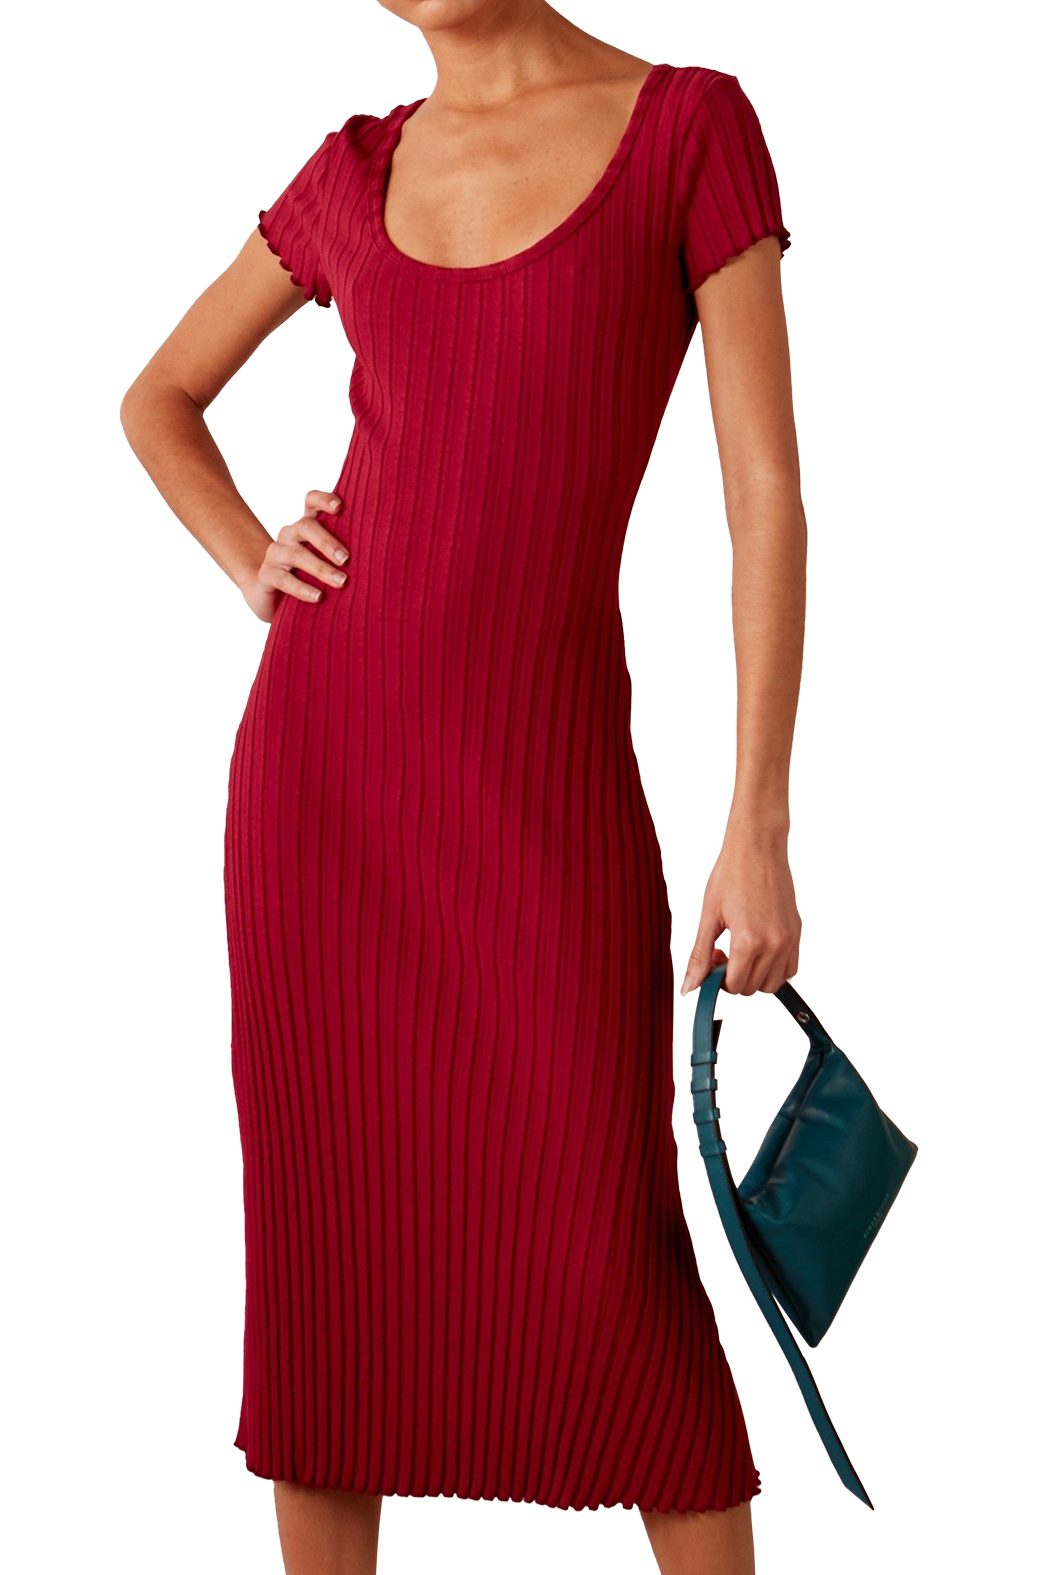 RIB Andros Dress in Rumba Red by Simon Miller - 1